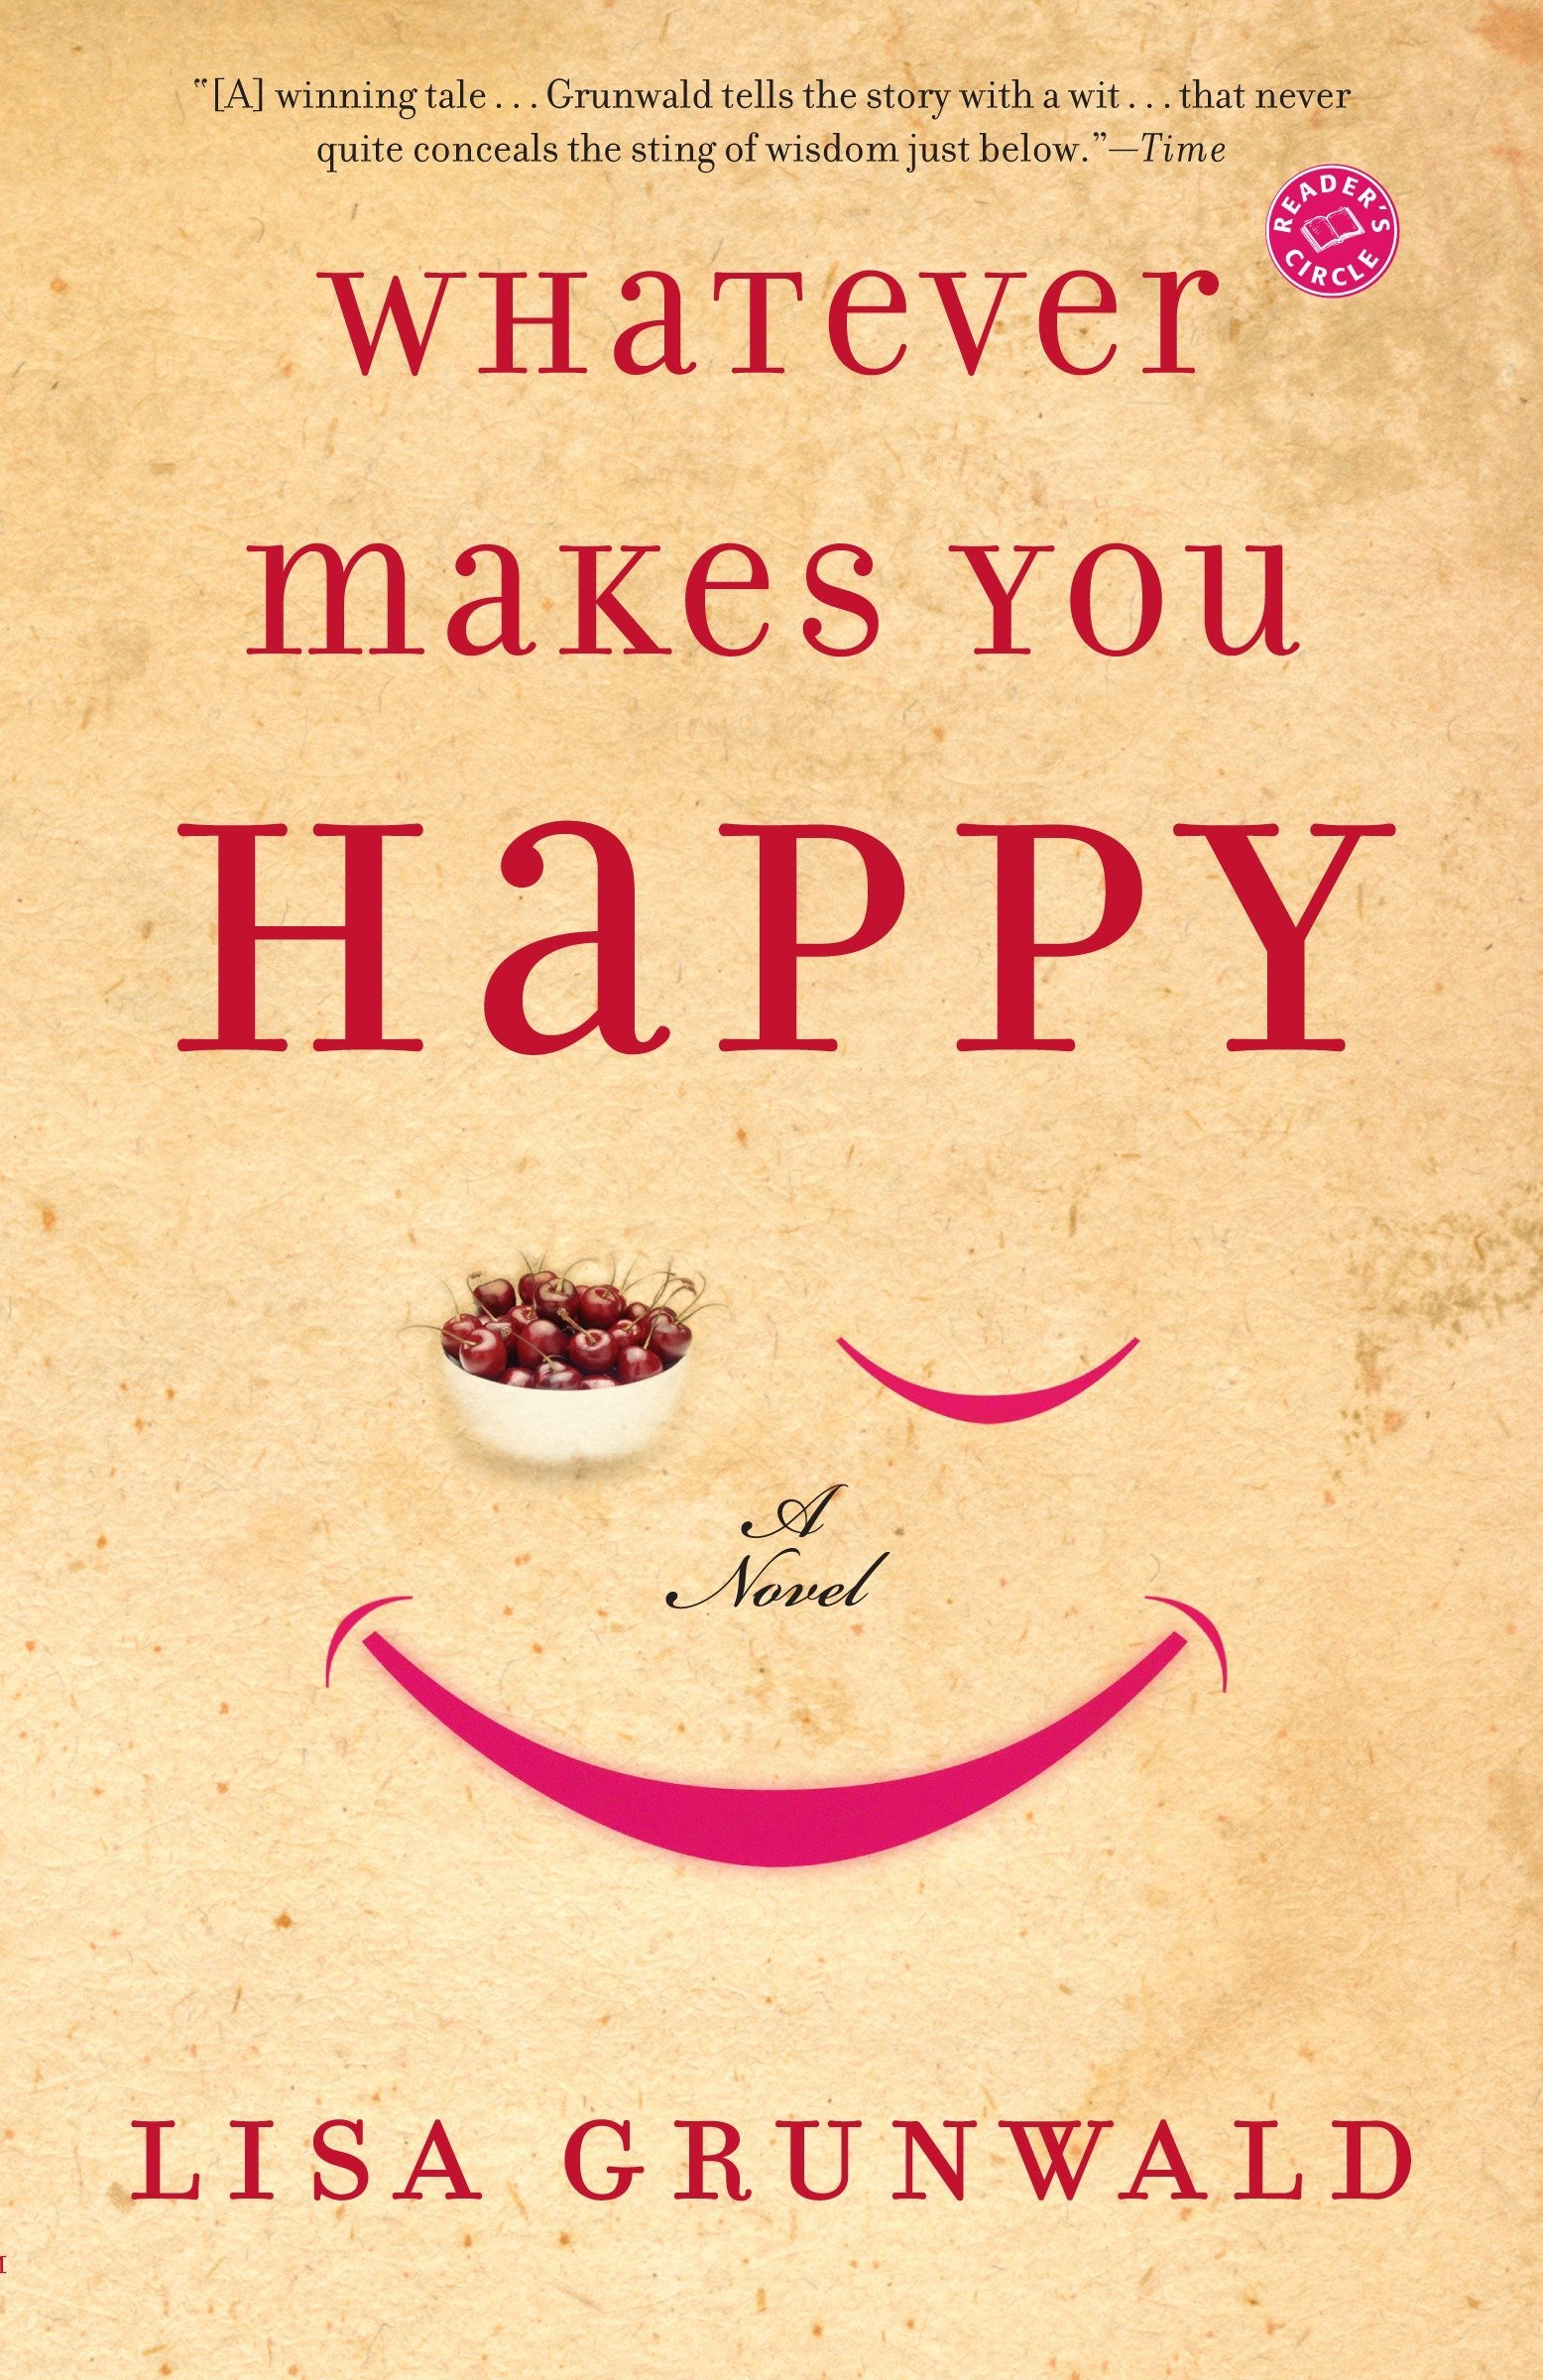 Whatever Makes You Happy A Novel Grunwald Lisa 9780812973211